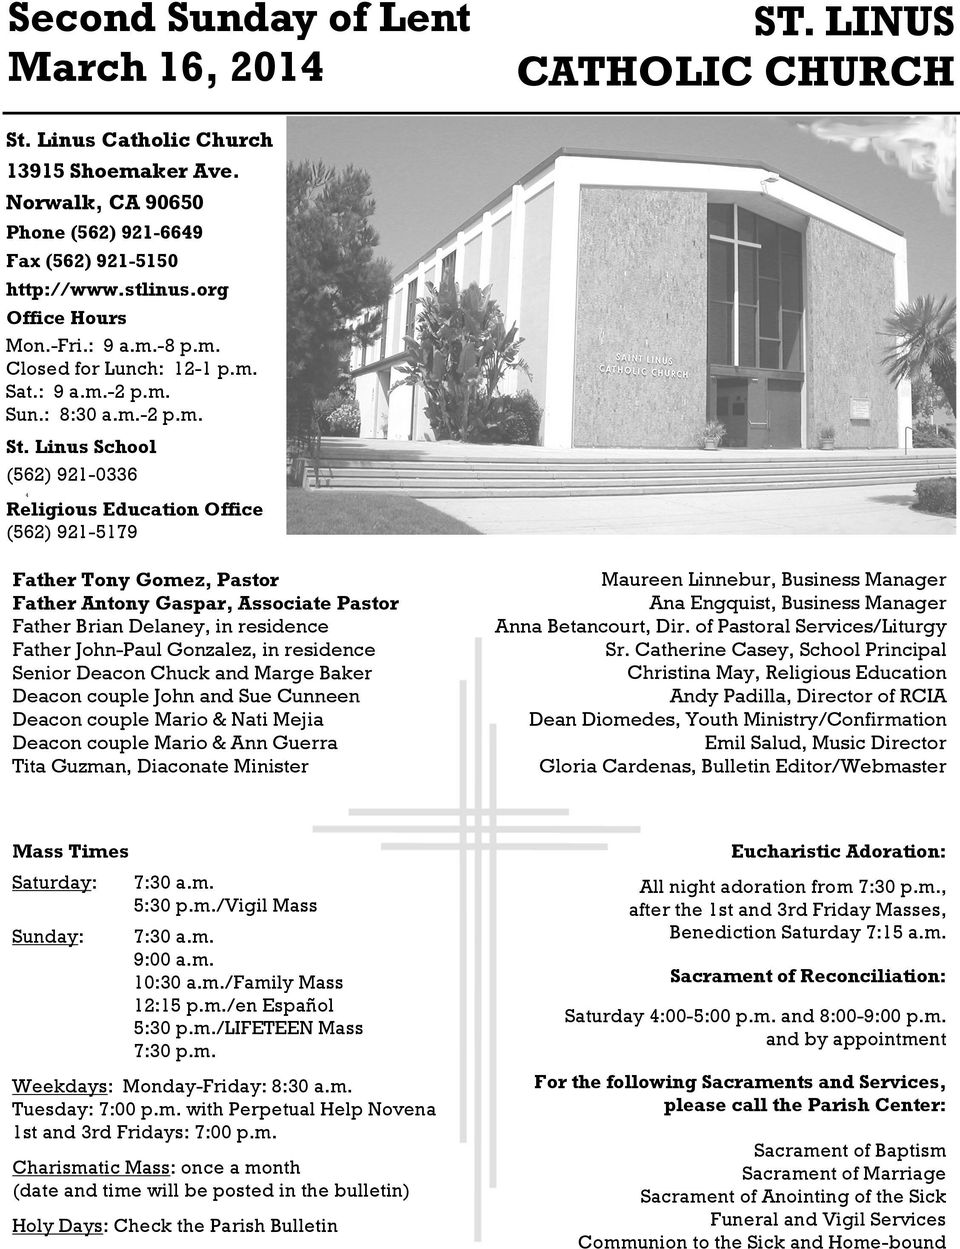 Linus School (562) 921-0336 4 Religious Education Office (562) 921-5179 Father Tony Gomez, Pastor Father Antony Gaspar, Associate Pastor Father Brian Delaney, in residence Father John-Paul Gonzalez,